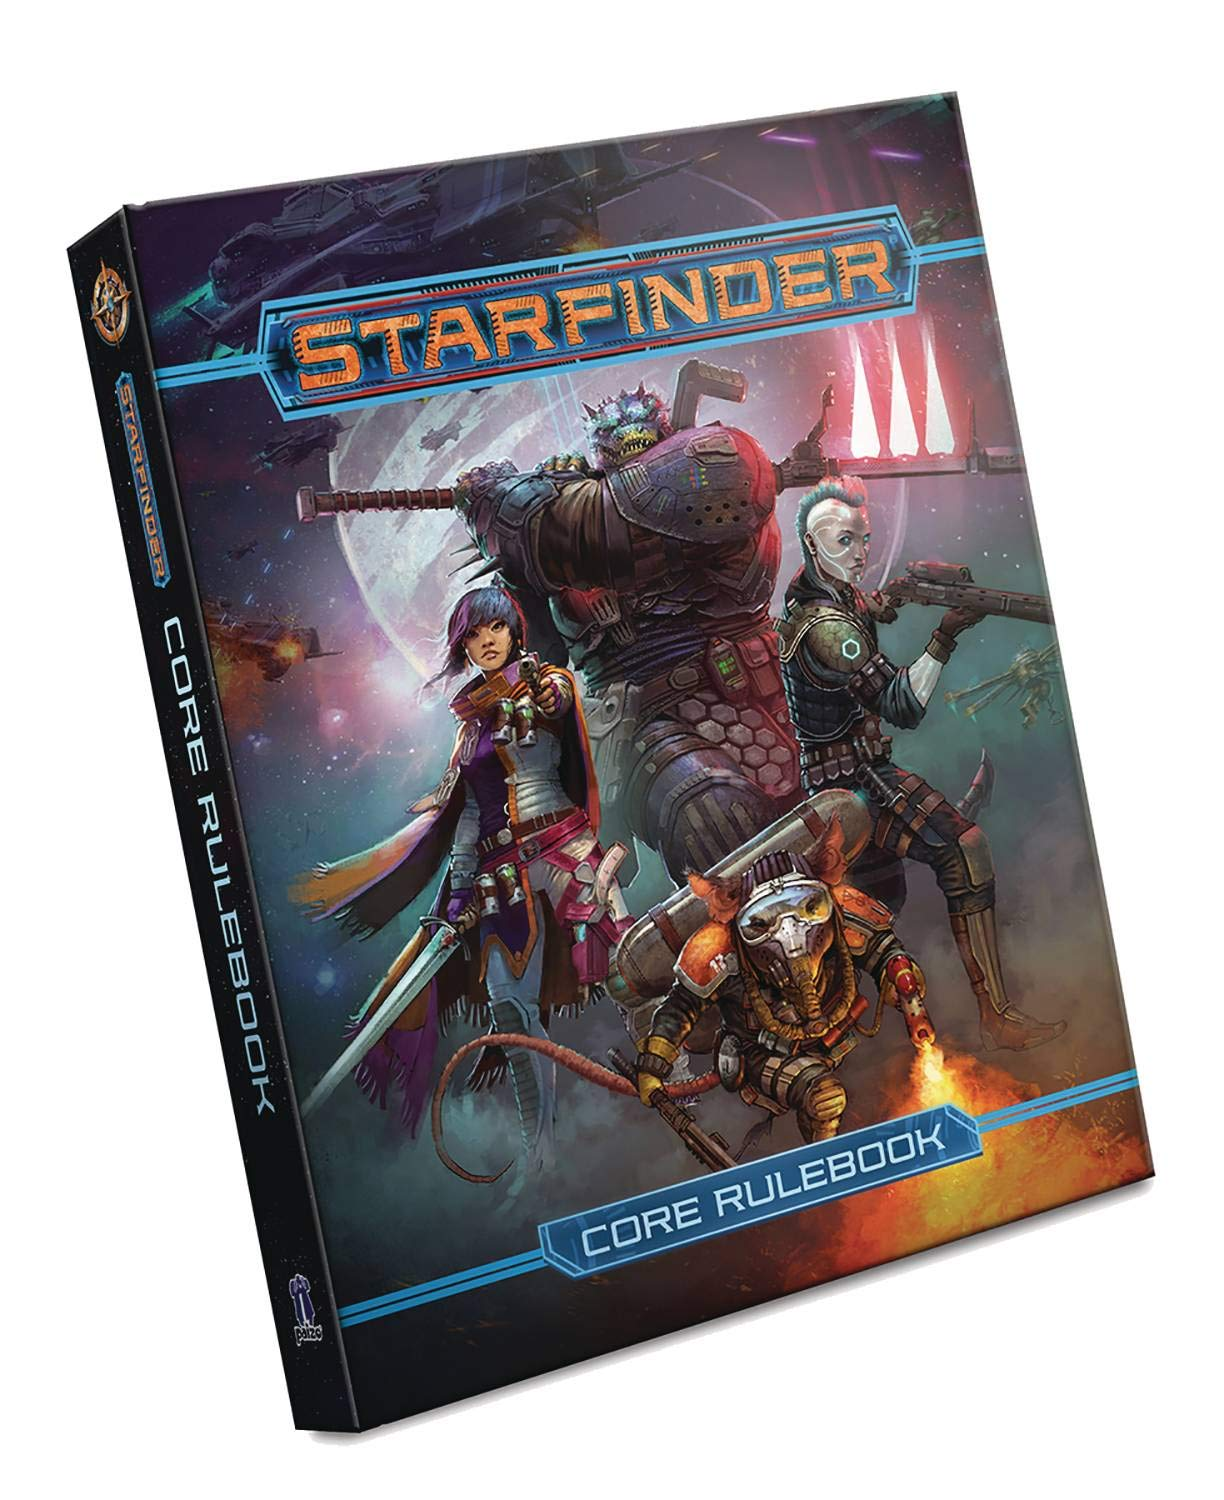 image relating to Starfinder Character Sheet Printable titled Starfinder Identity Sheet dicegeeks